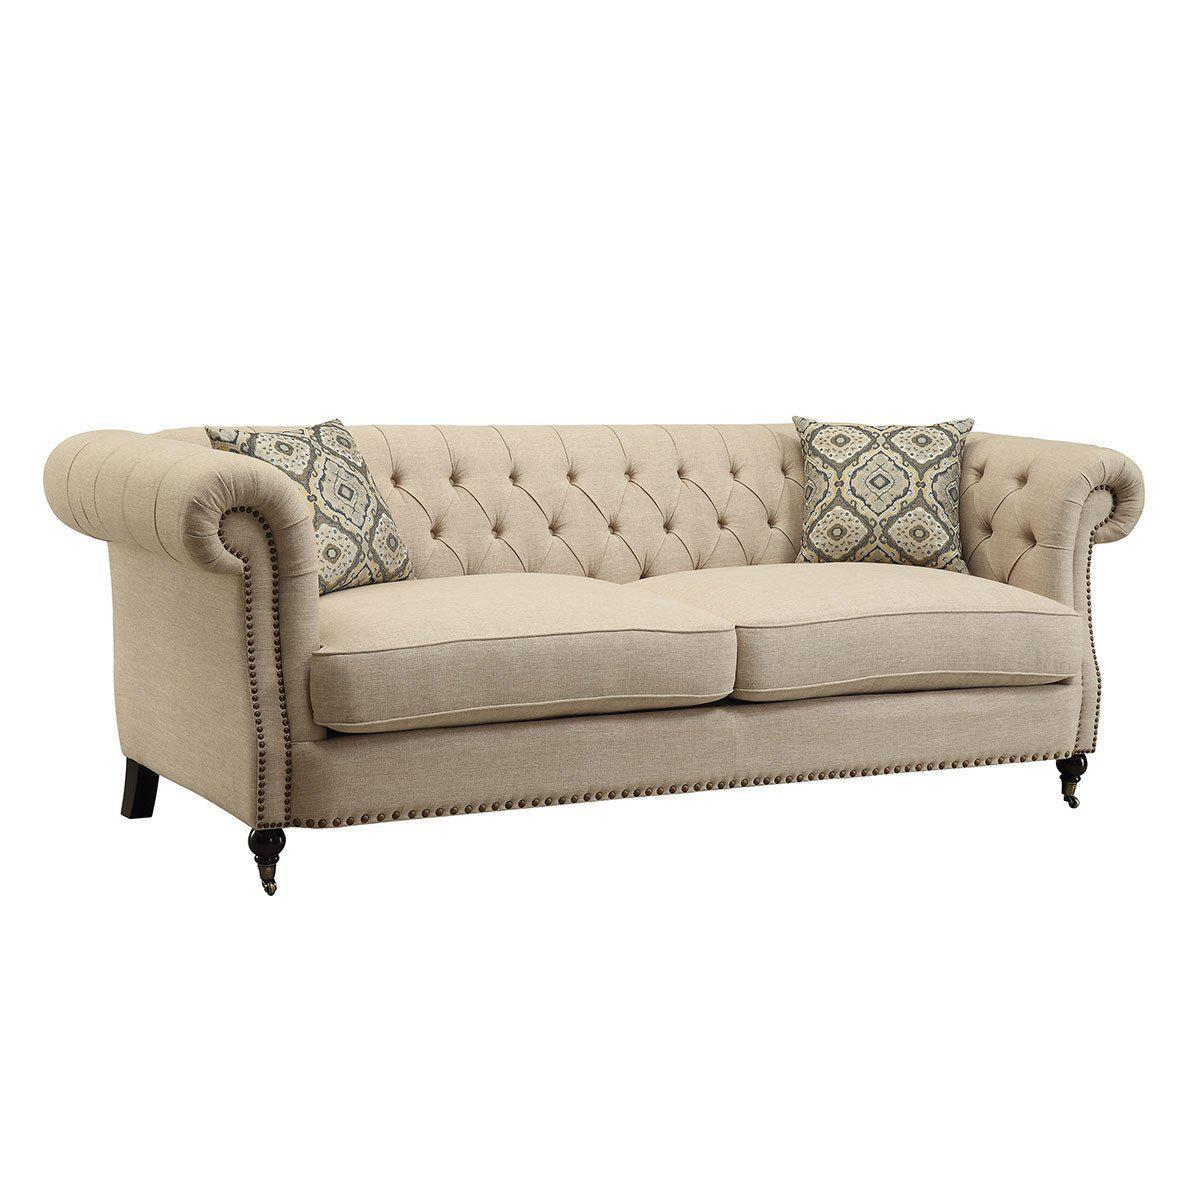 Trivellato Sofa-sofas-Jennifer Furniture